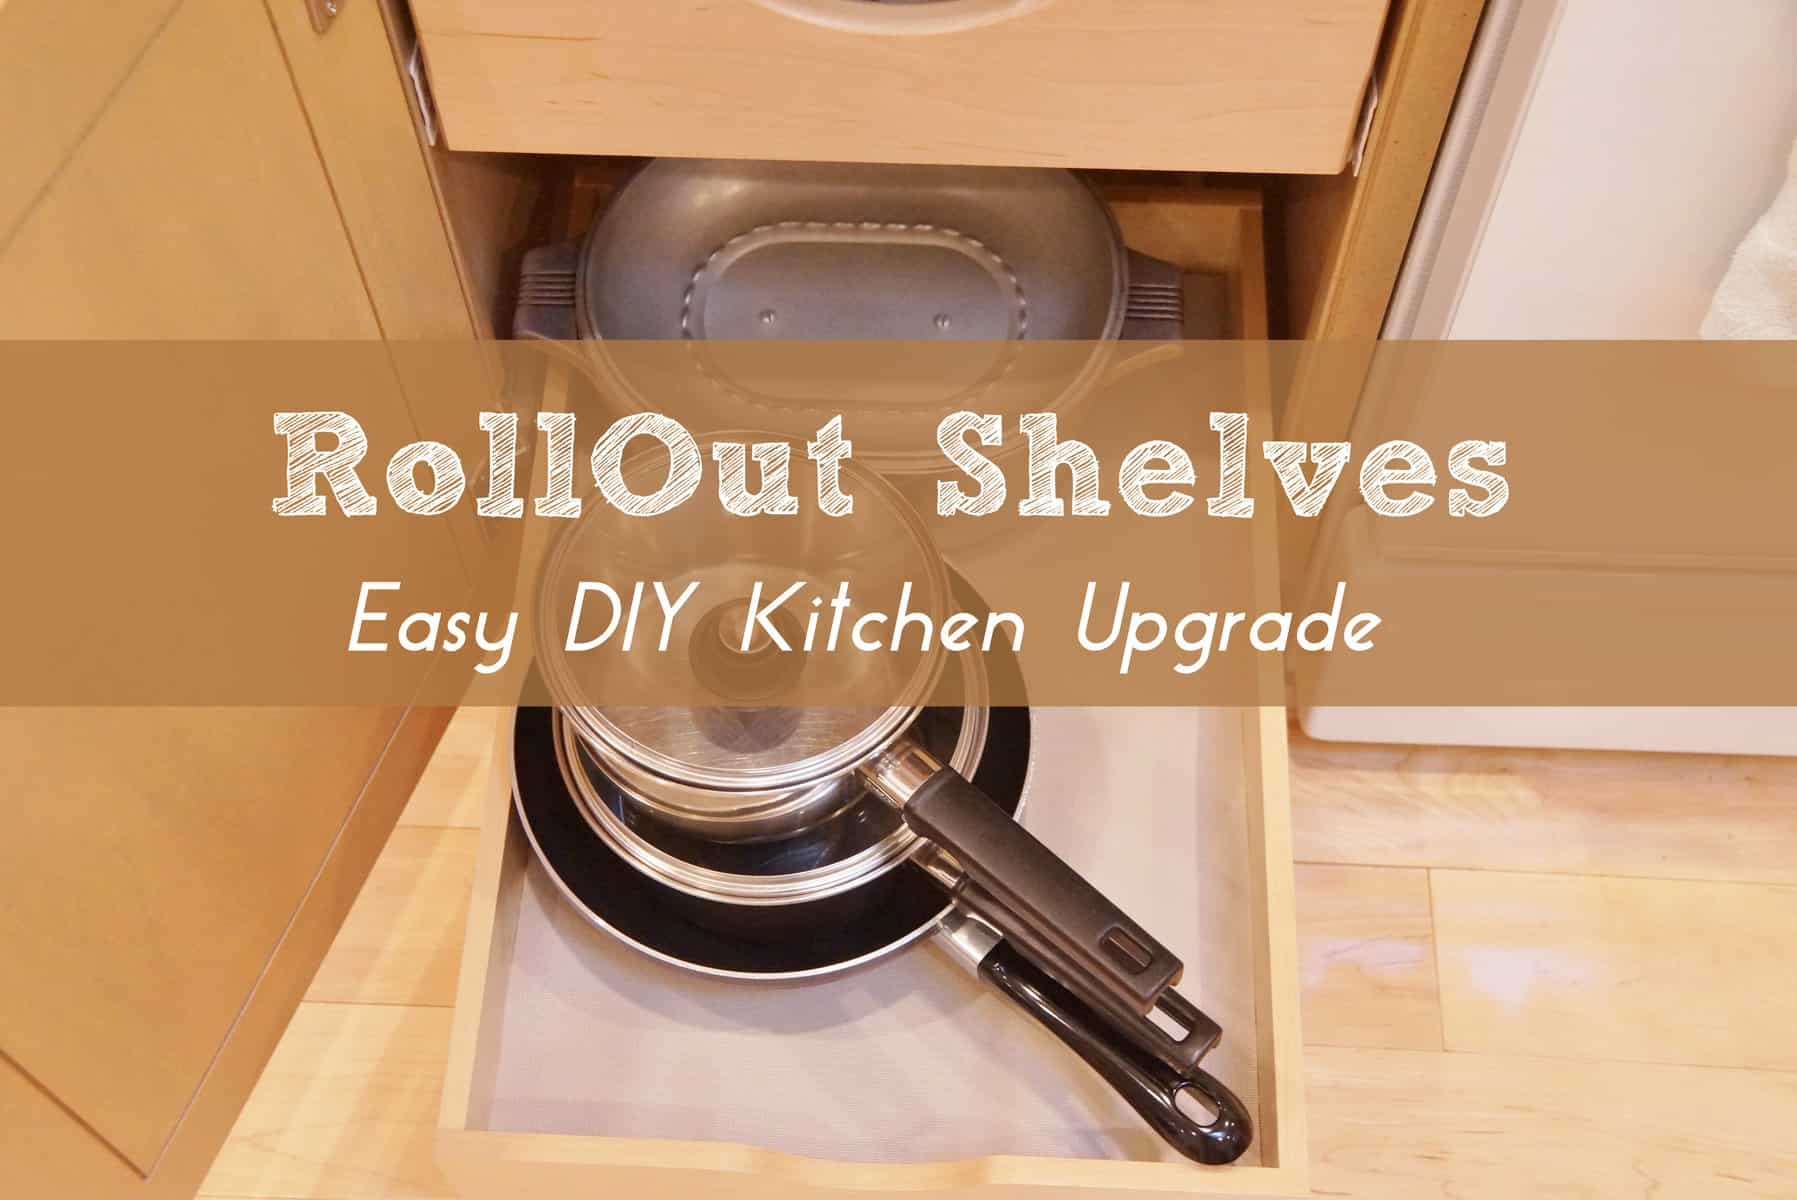 How To Make Pull Out Shelves For Kitchen Cabinets Ron Hazelton